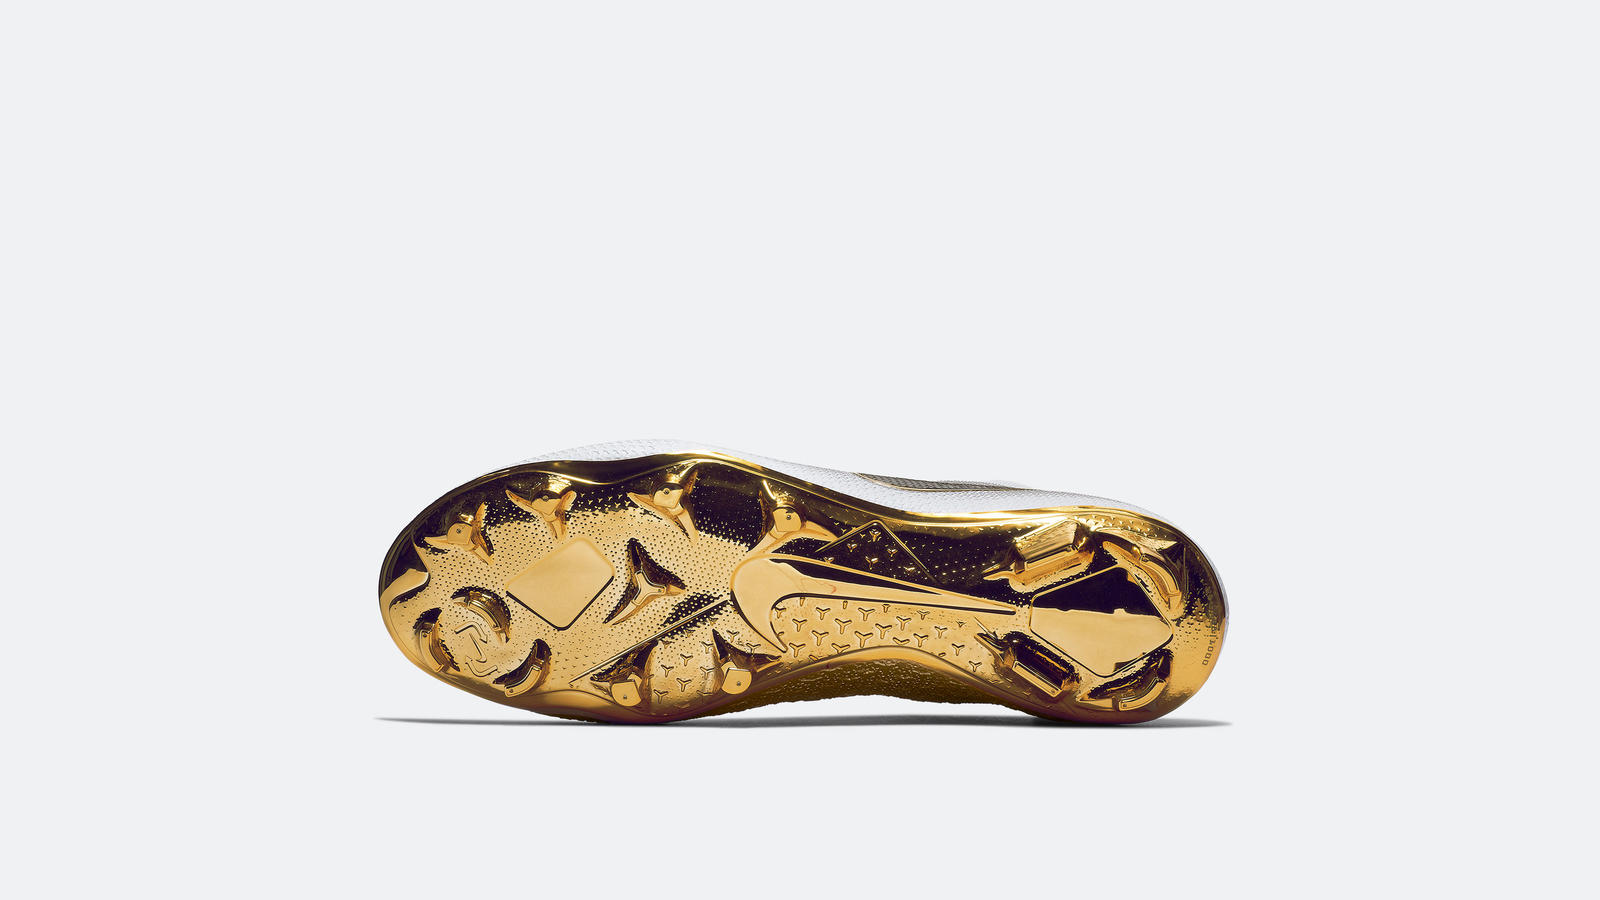 Nikefootball goldphantom 2018 re 2 native 1600